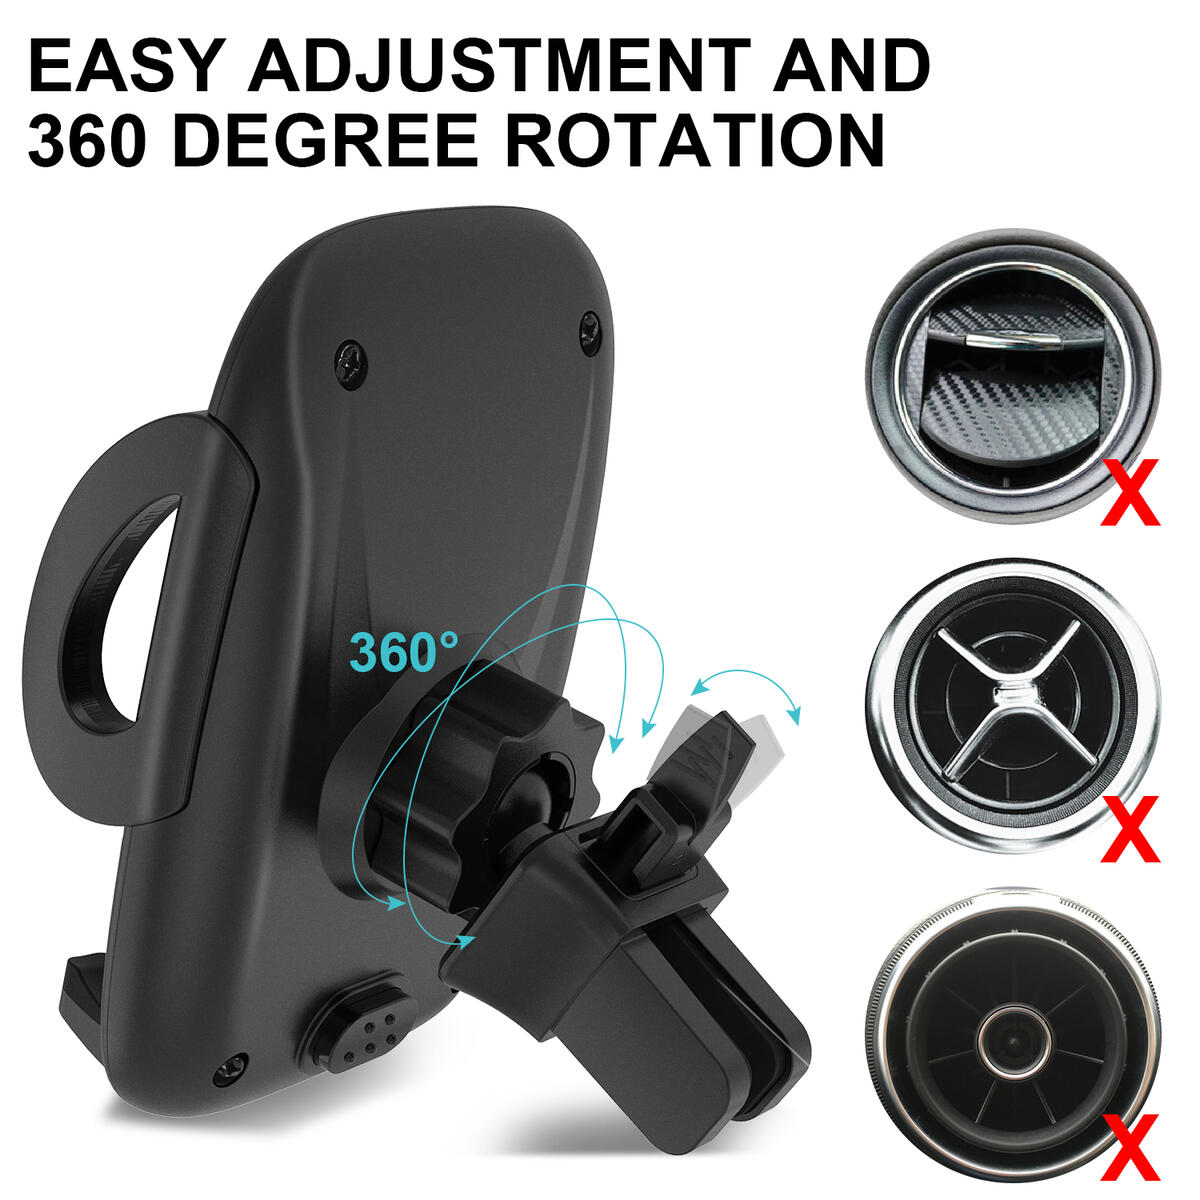 phone car holder 3-in-1 Universal Adjustable Cell Phone Holder Holder Car Cup Holder Phone Mount